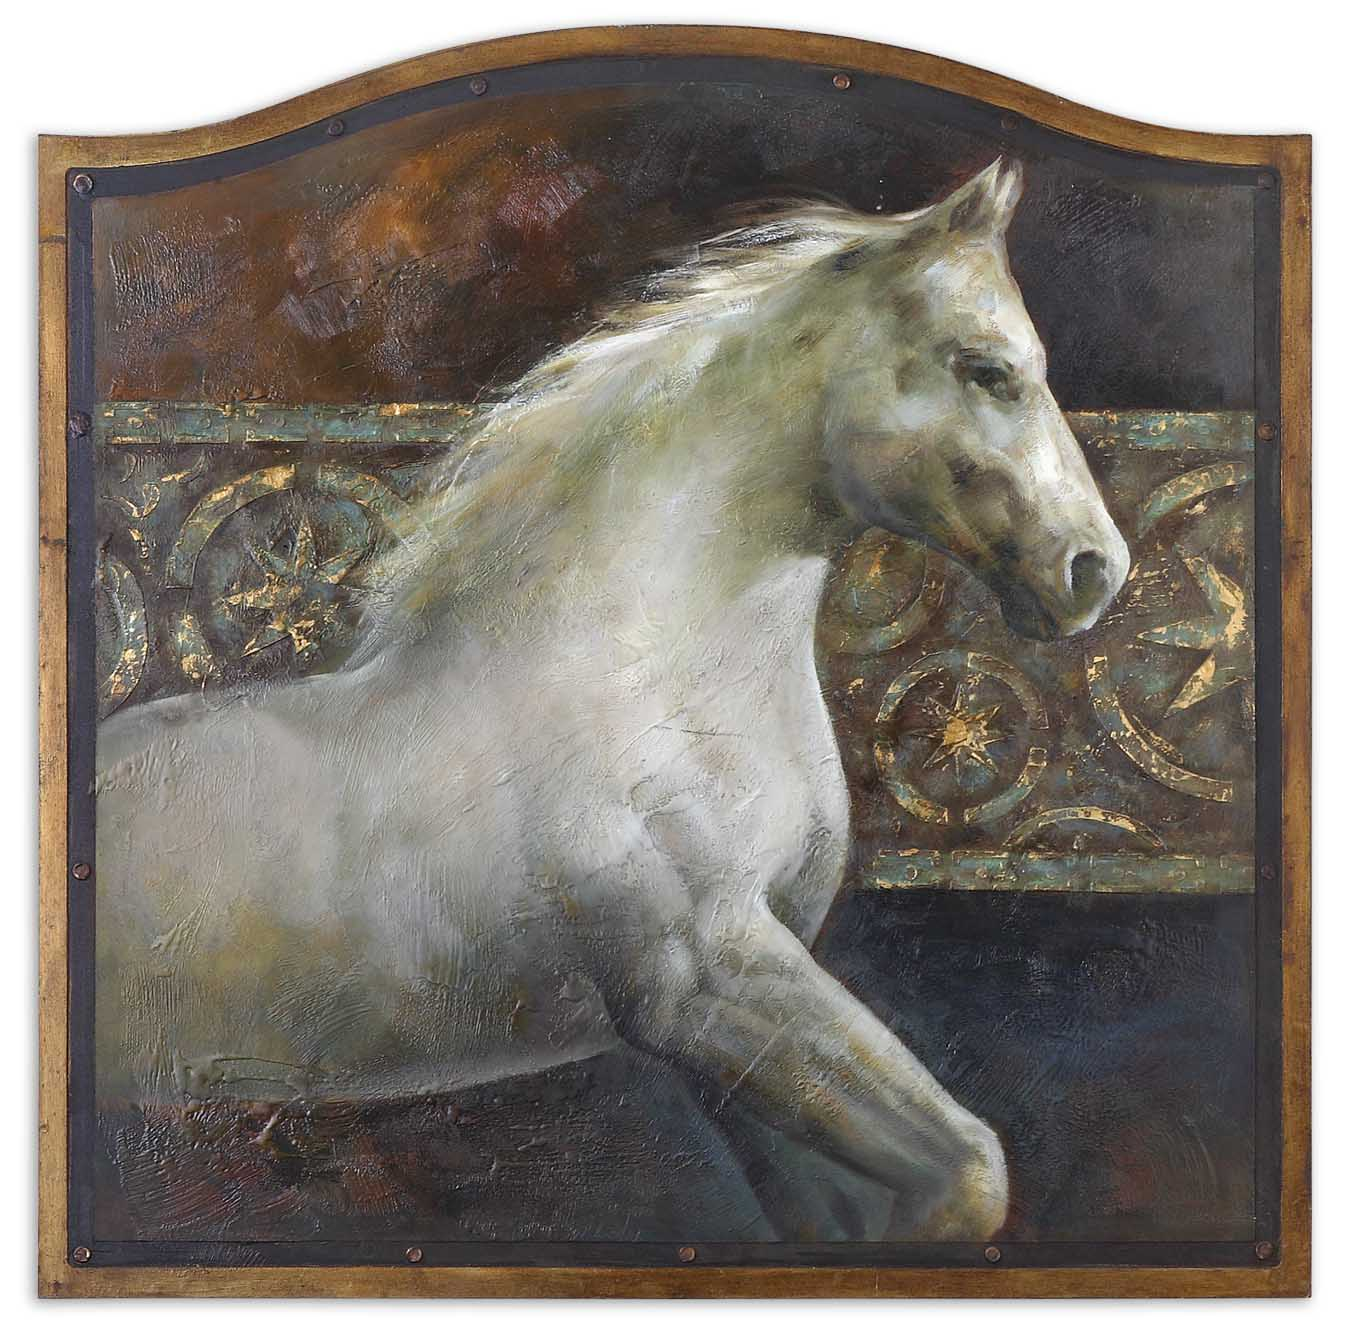 Uttermost 34236 Majestic Friend Hand Painted Art